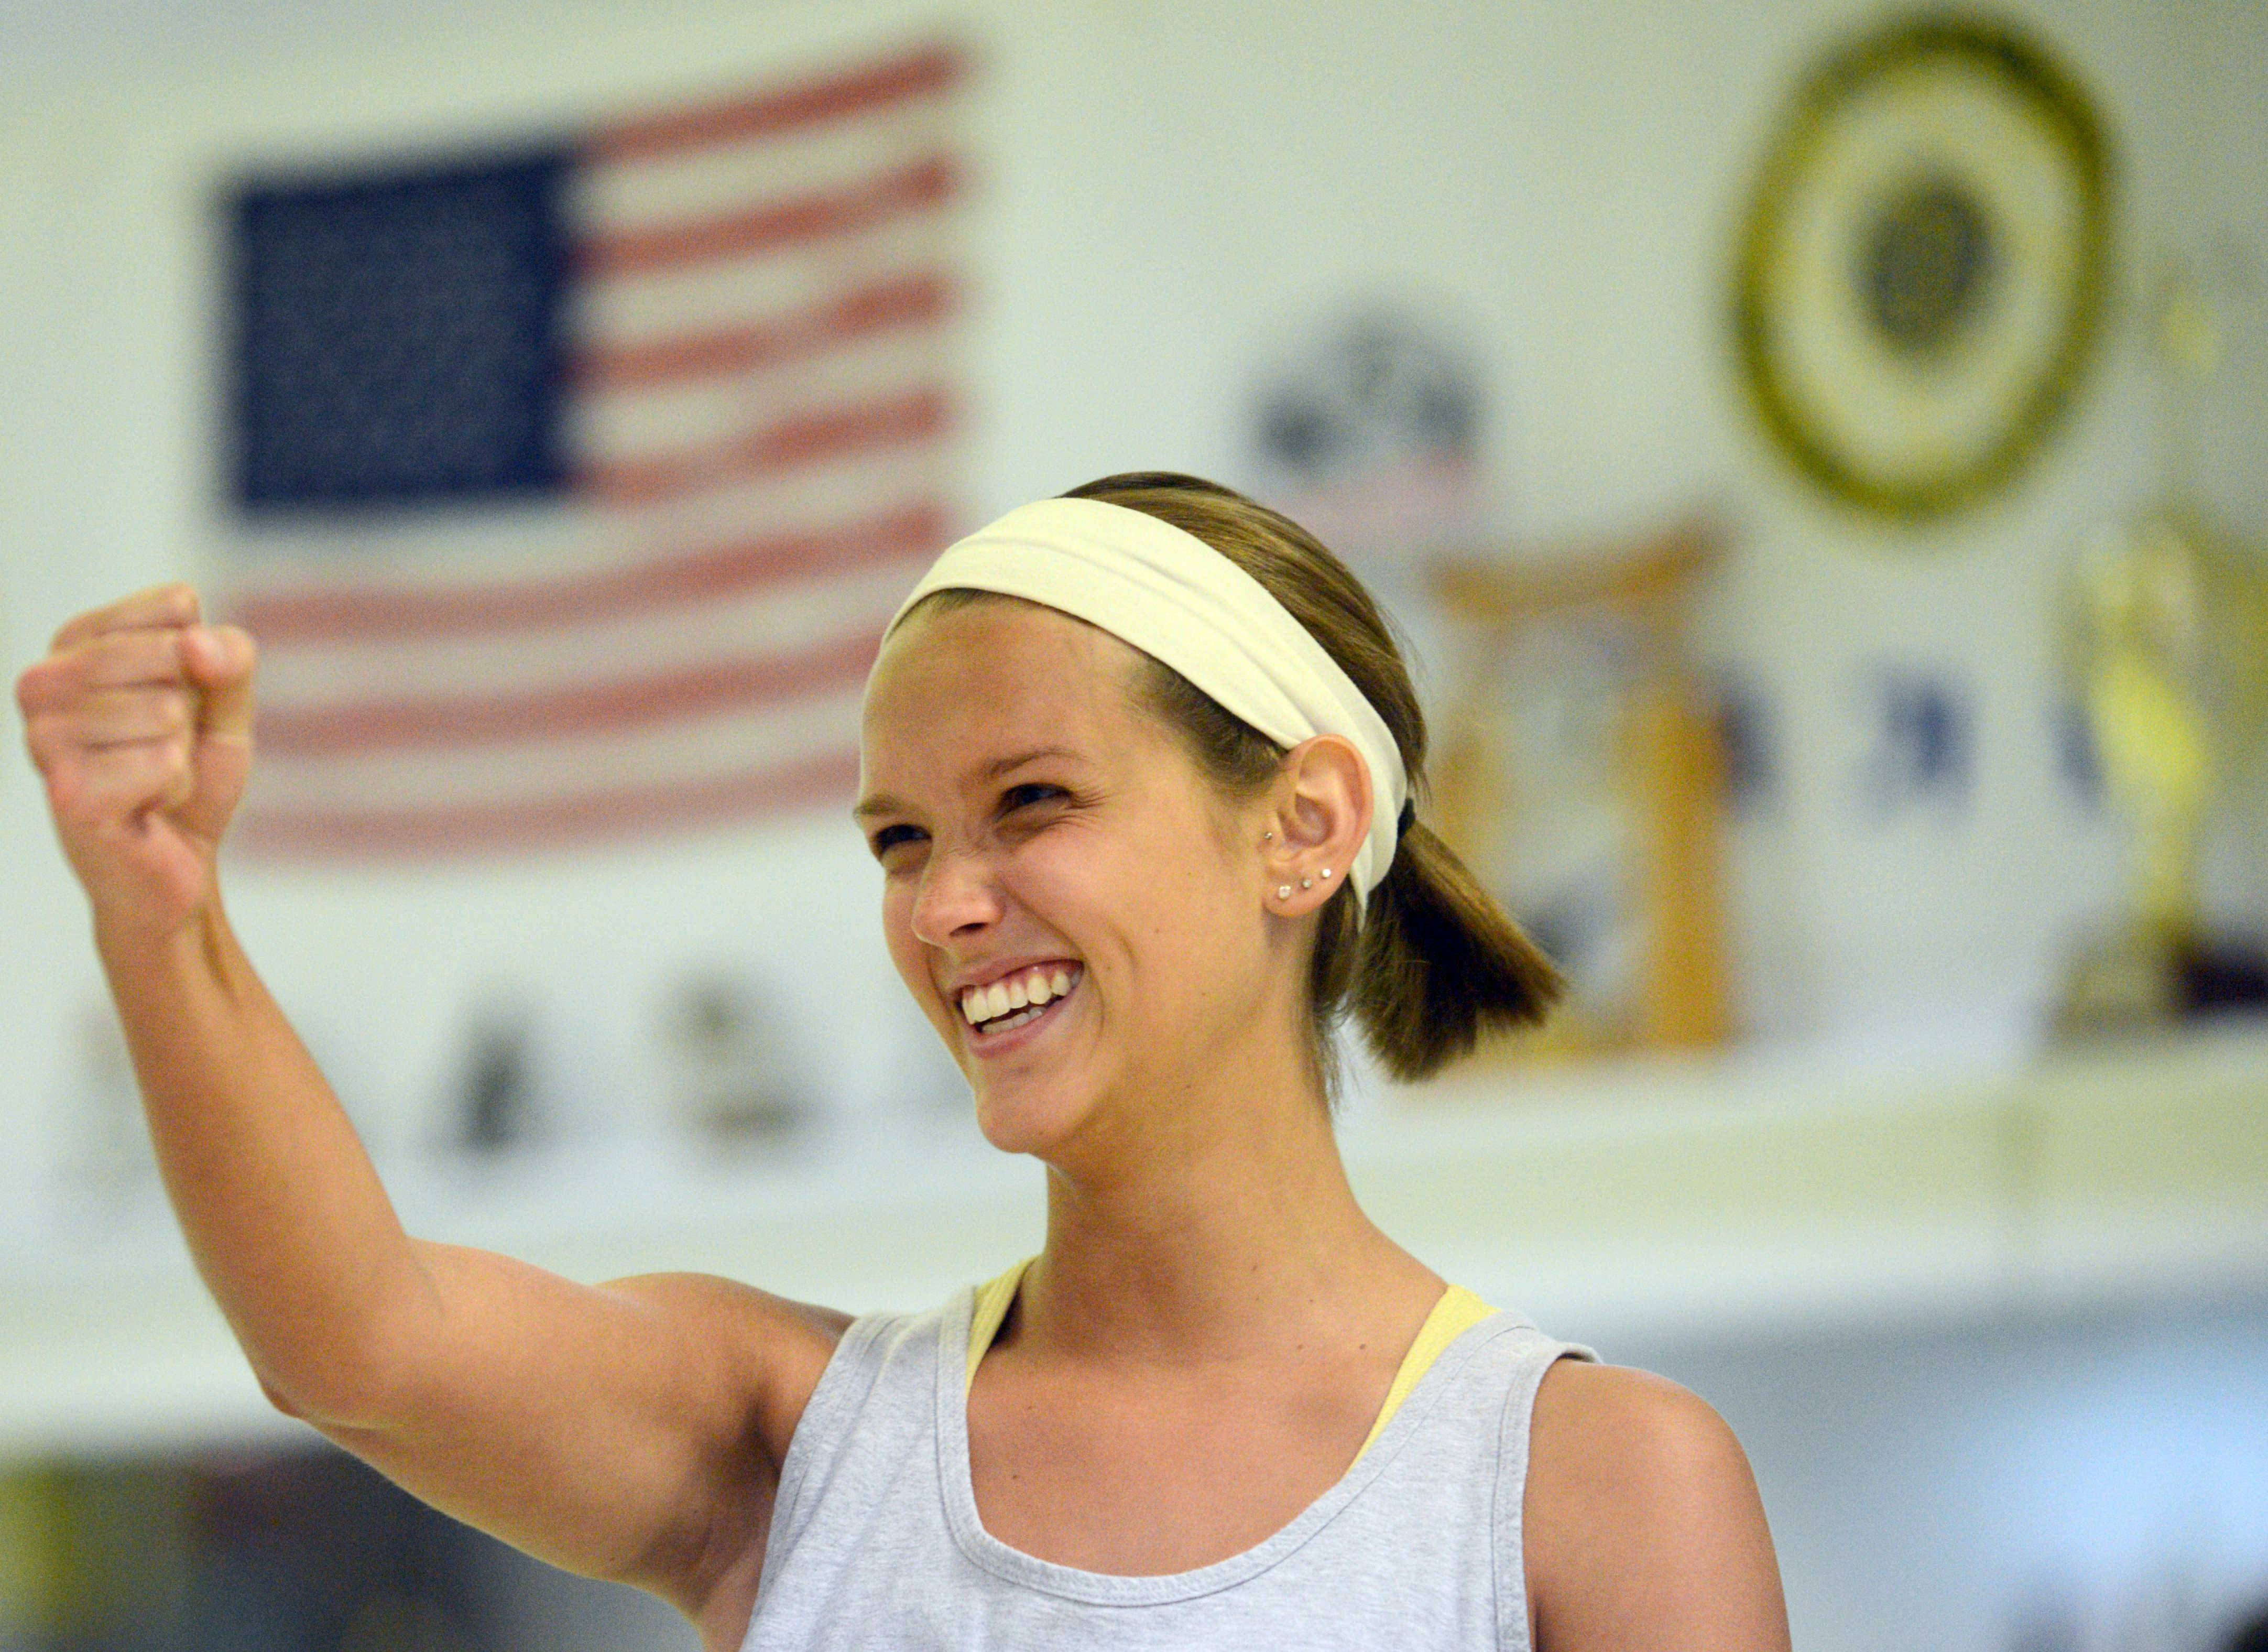 Rachel Wittel of Palatine shows her might during a women's self-defense class.